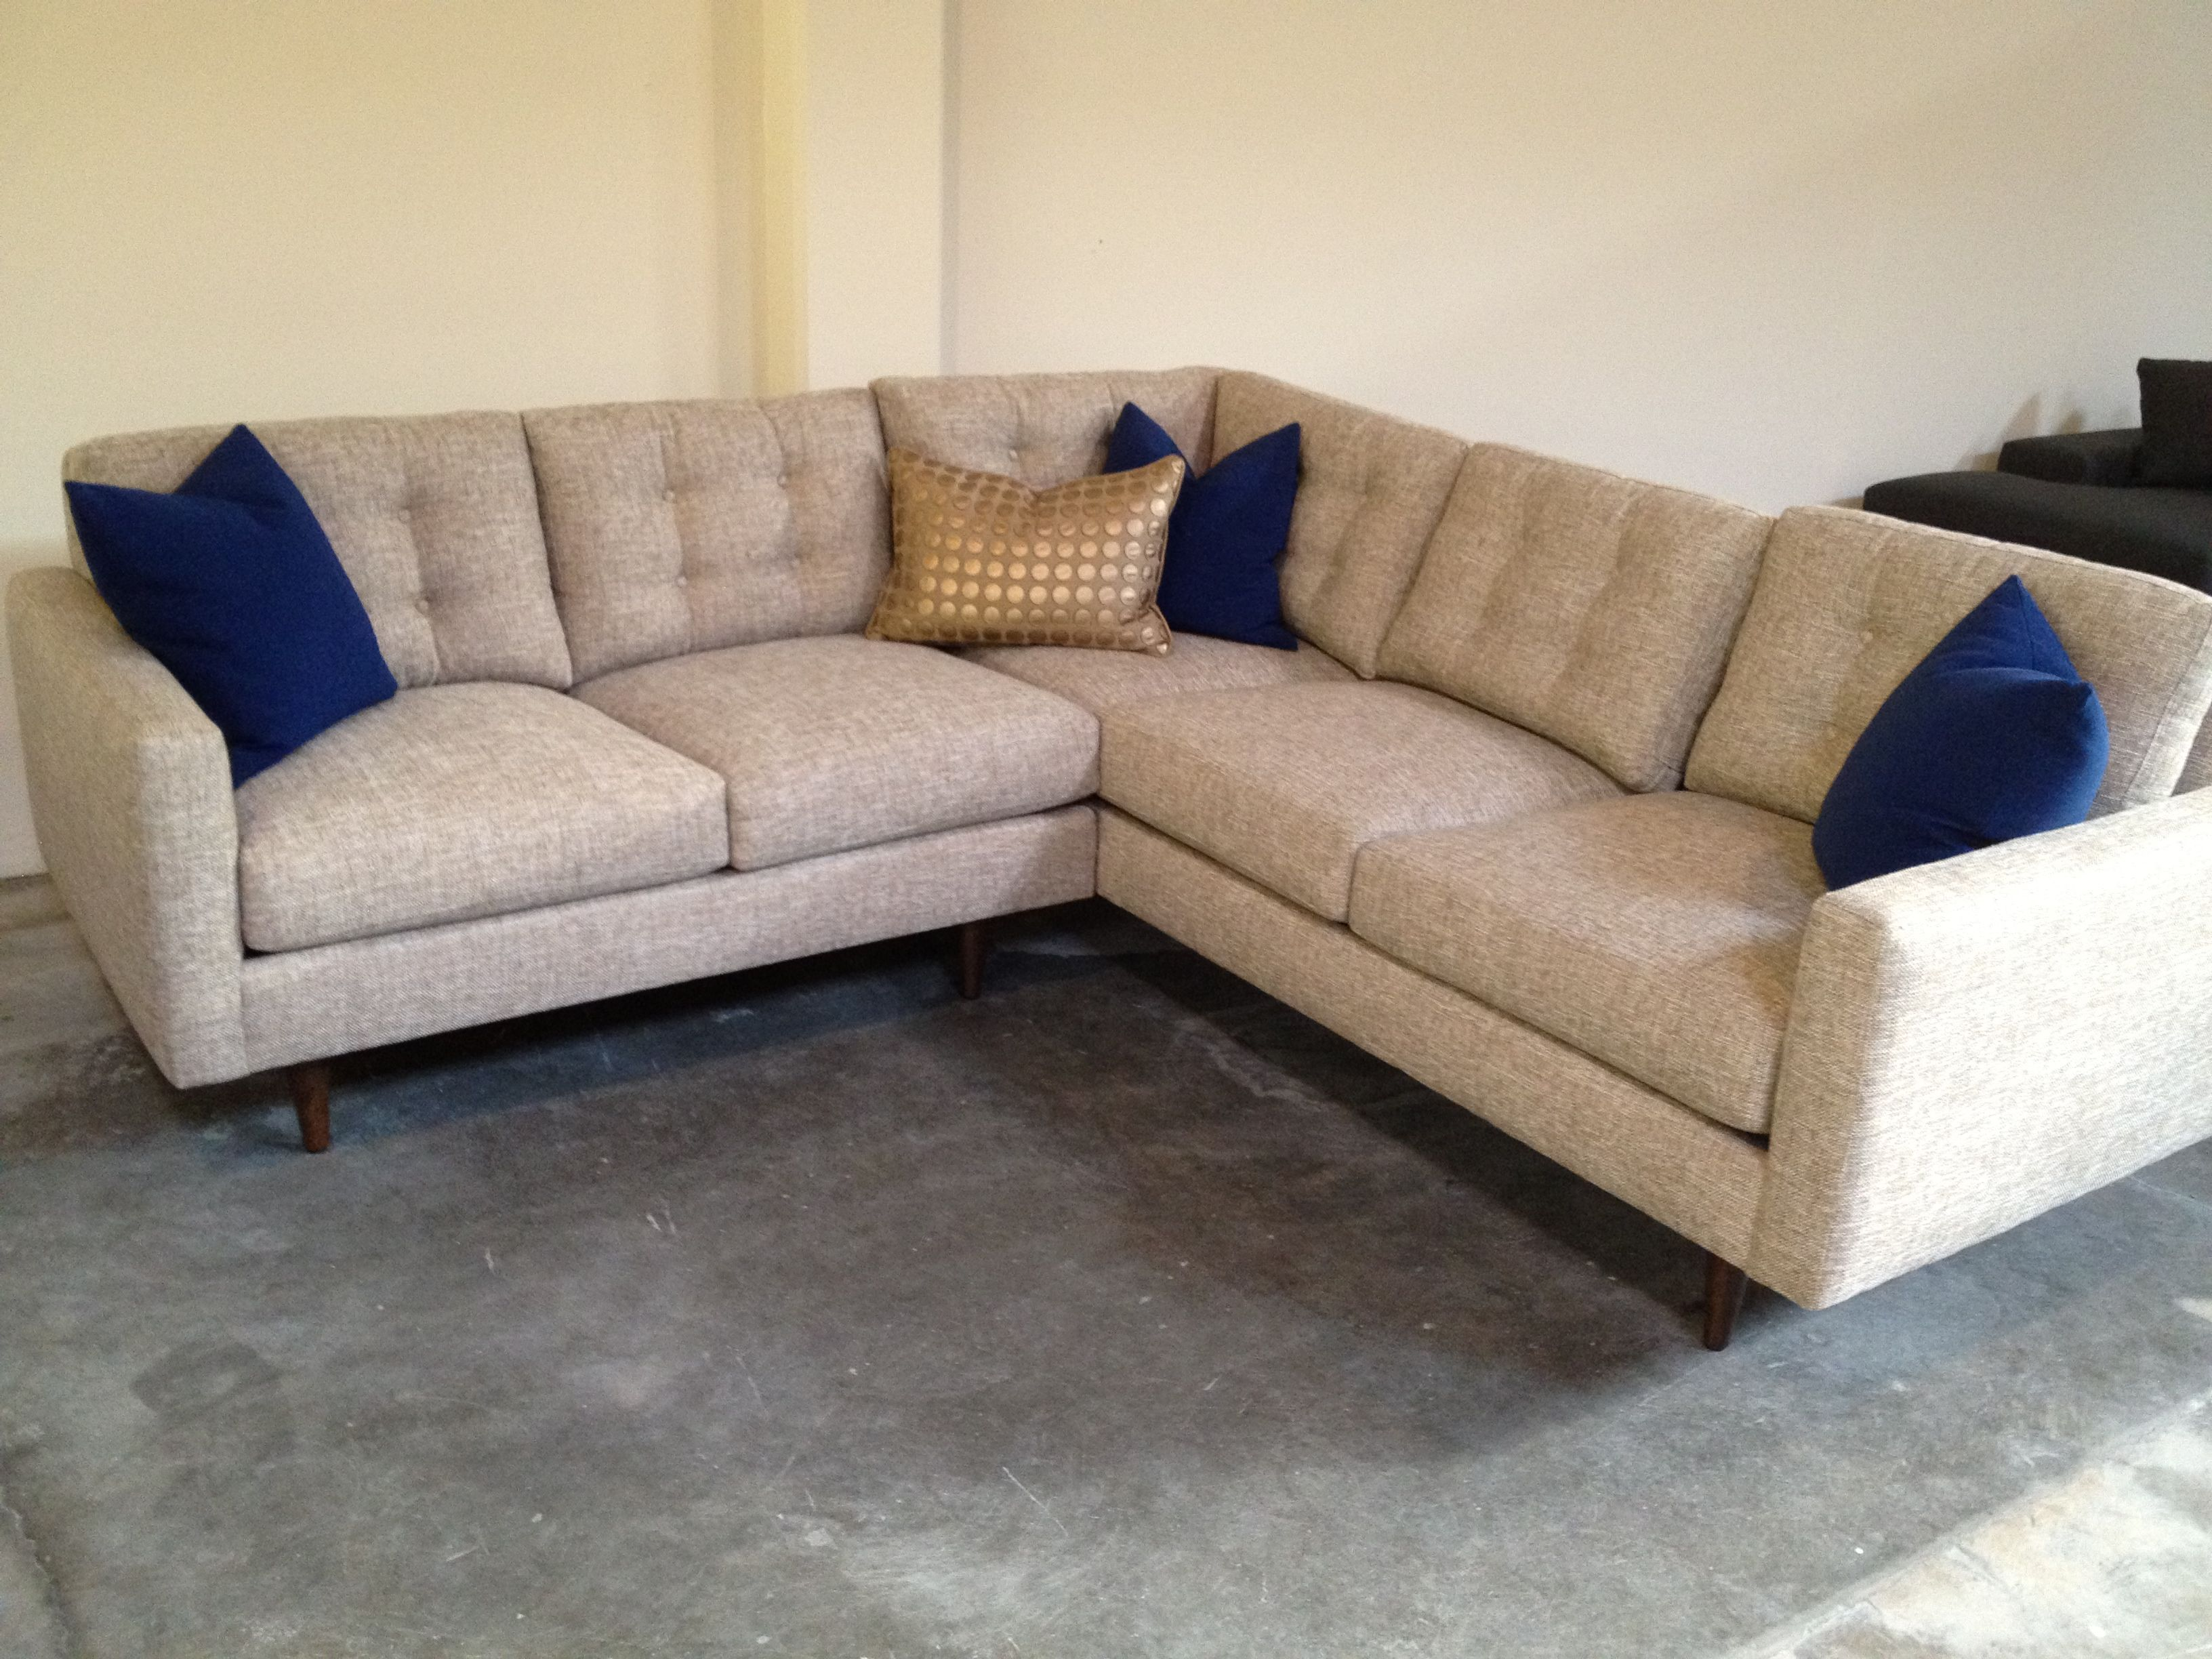 Hana Sofa Sofa Sectional Every Style Can Be Customized In